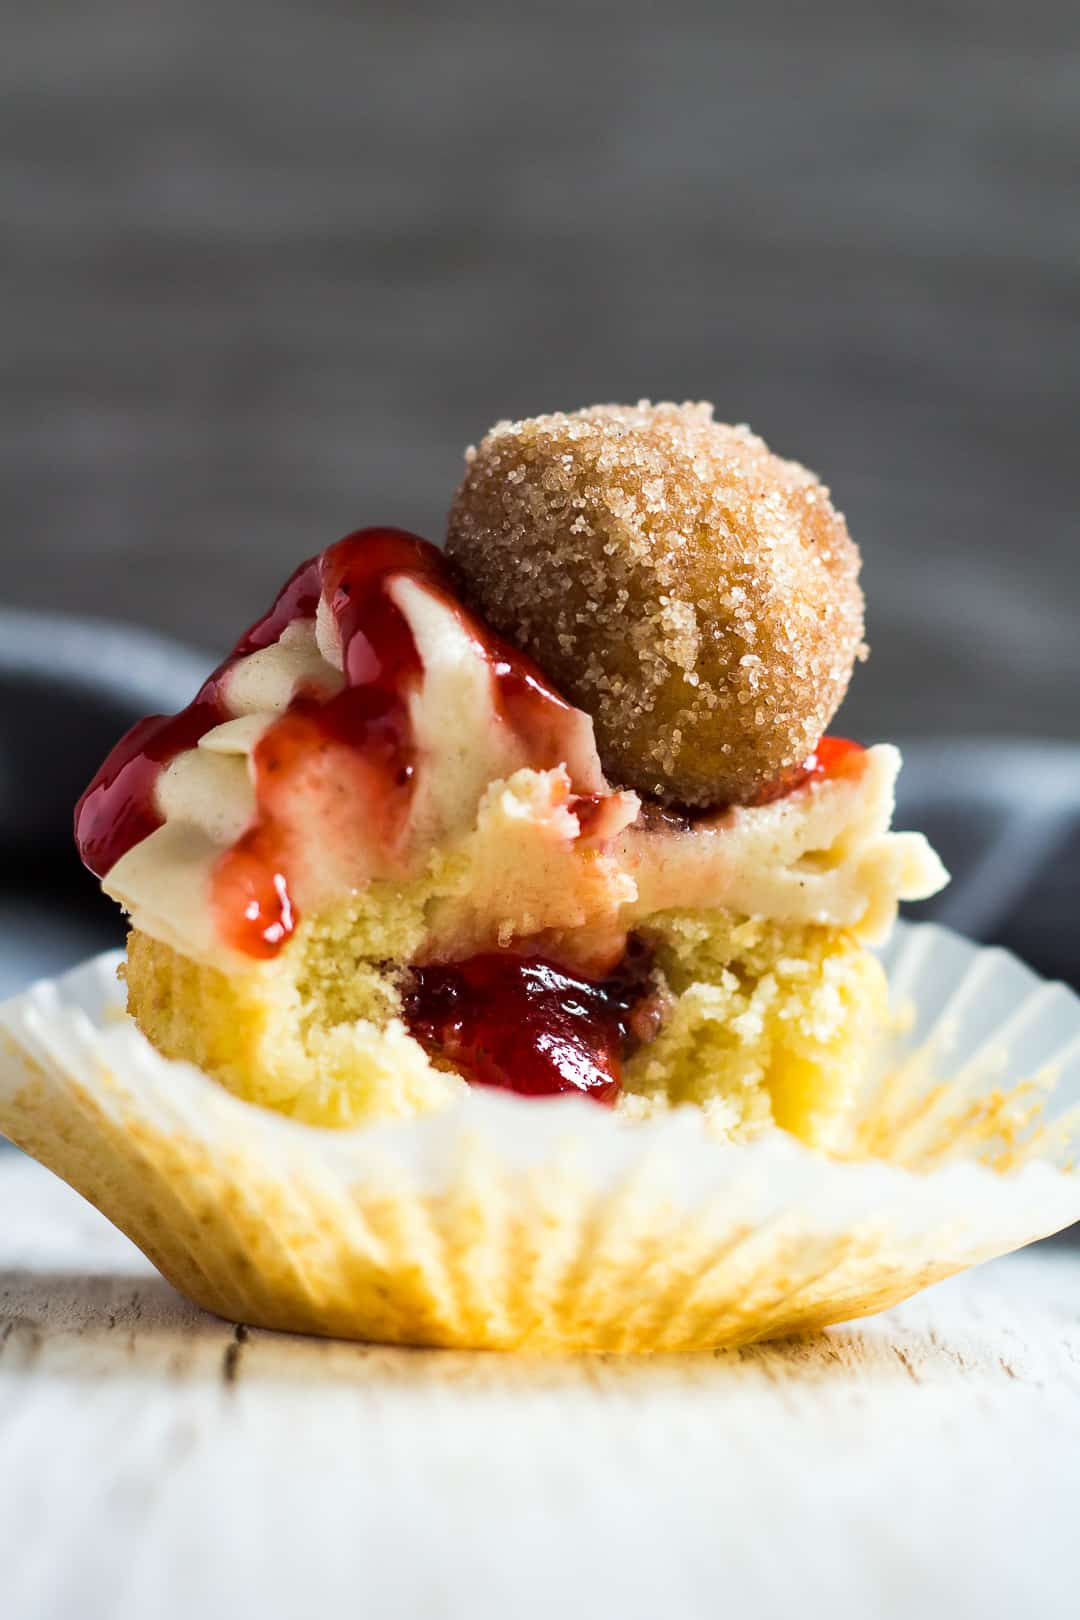 A jam doughnut cupcake with a bite taken out of it to show jam filling.